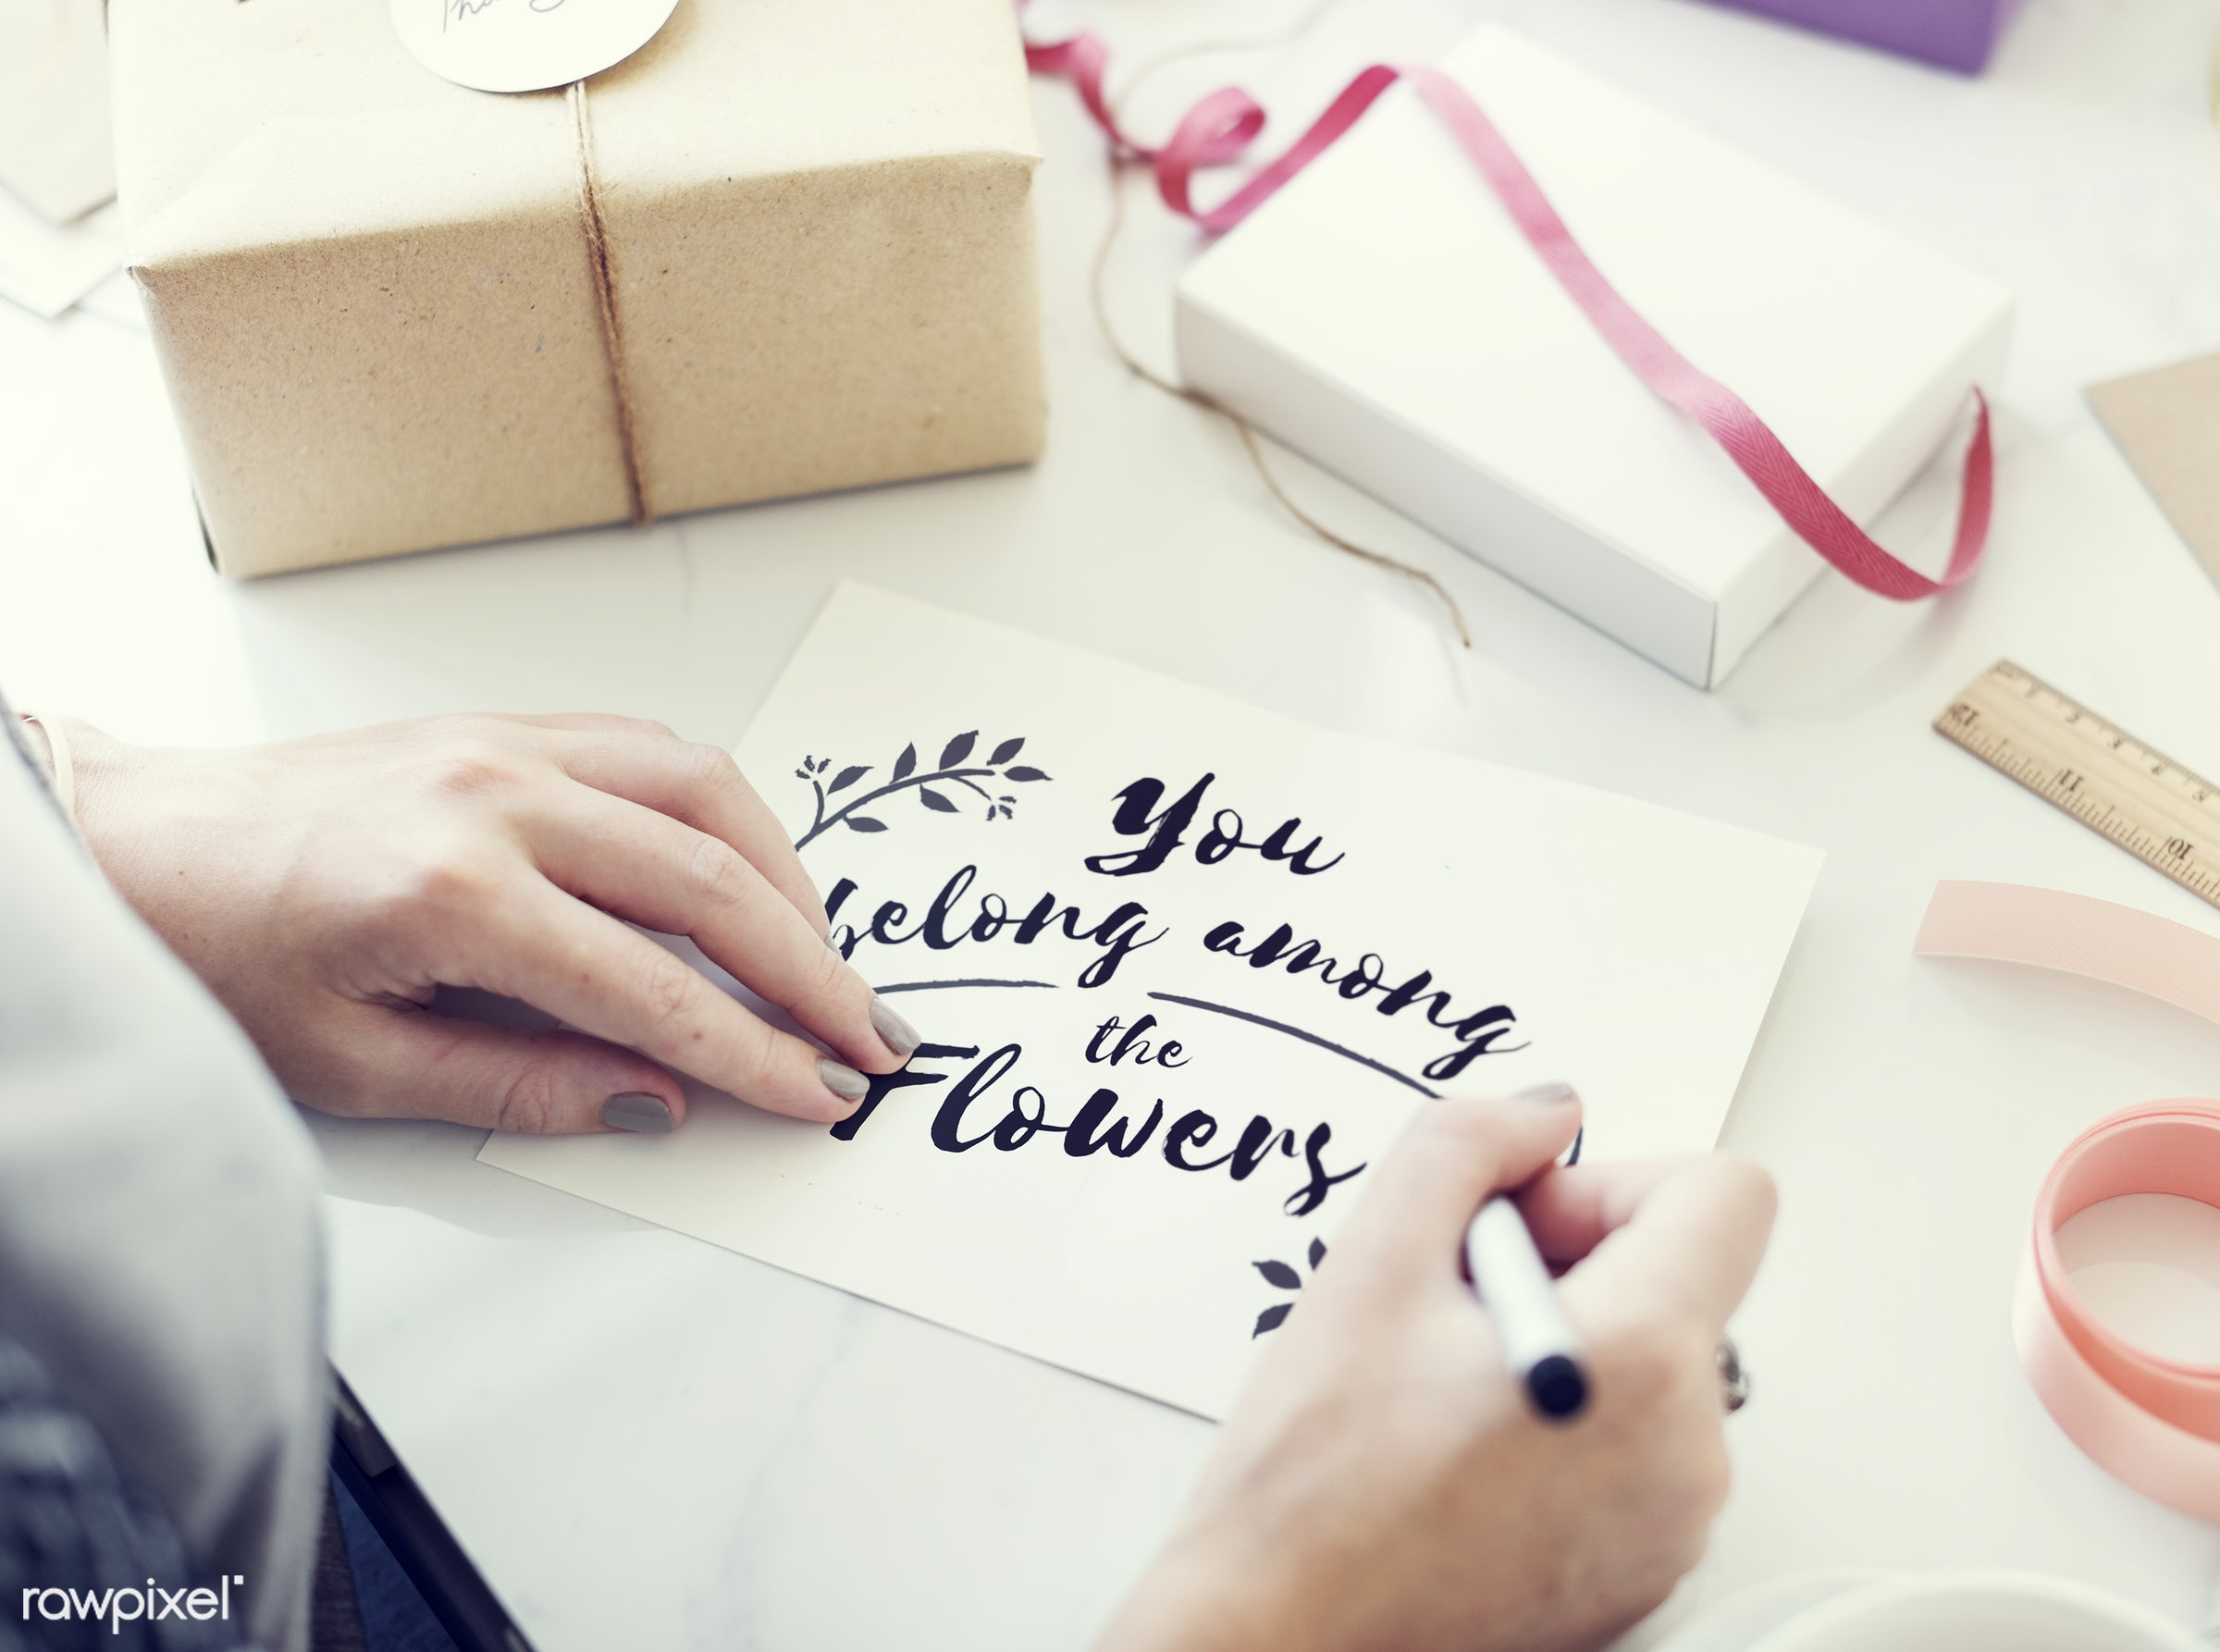 compliment, anniversary, birthday, box, card, celebrate, celebration, event, events, festive, gift, gifts, hands, happiness...